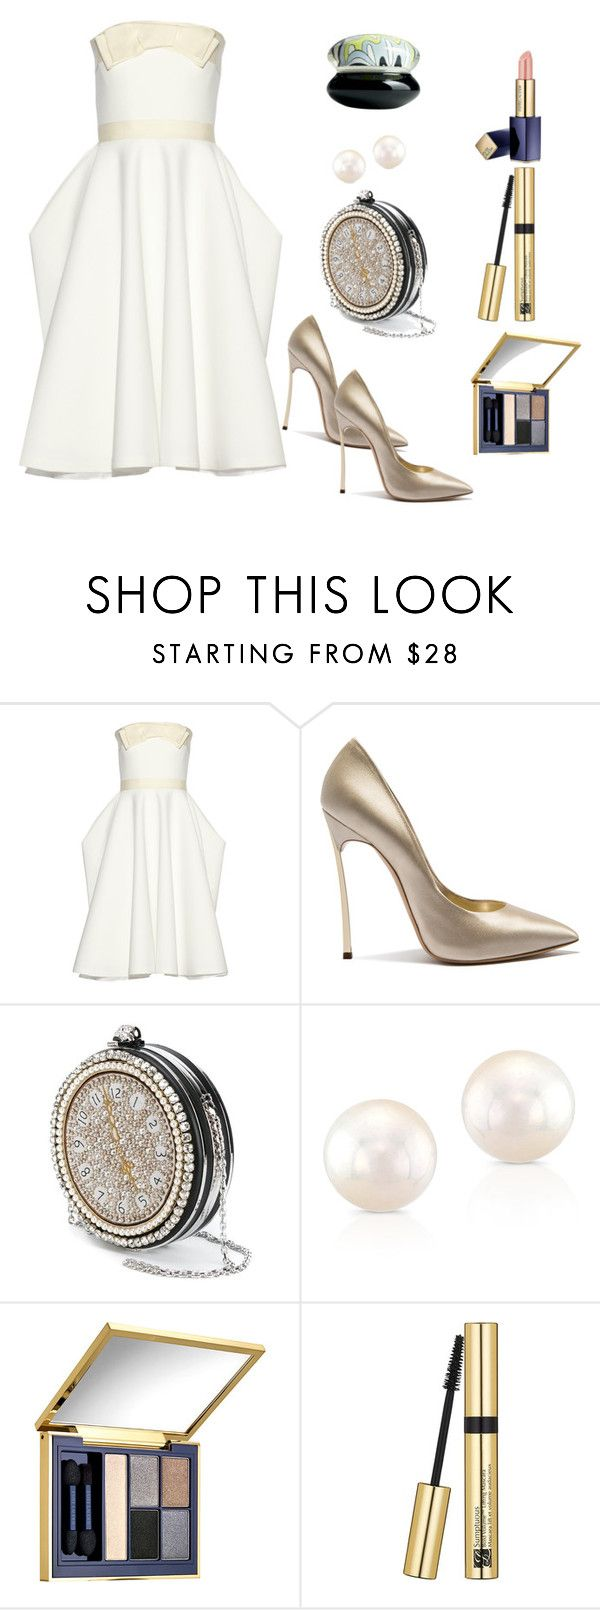 """Untitled #442"" by alexandraspring98 ❤ liked on Polyvore featuring Lanvin, Casadei, Alexander McQueen, Anne Sisteron and Estée Lauder"